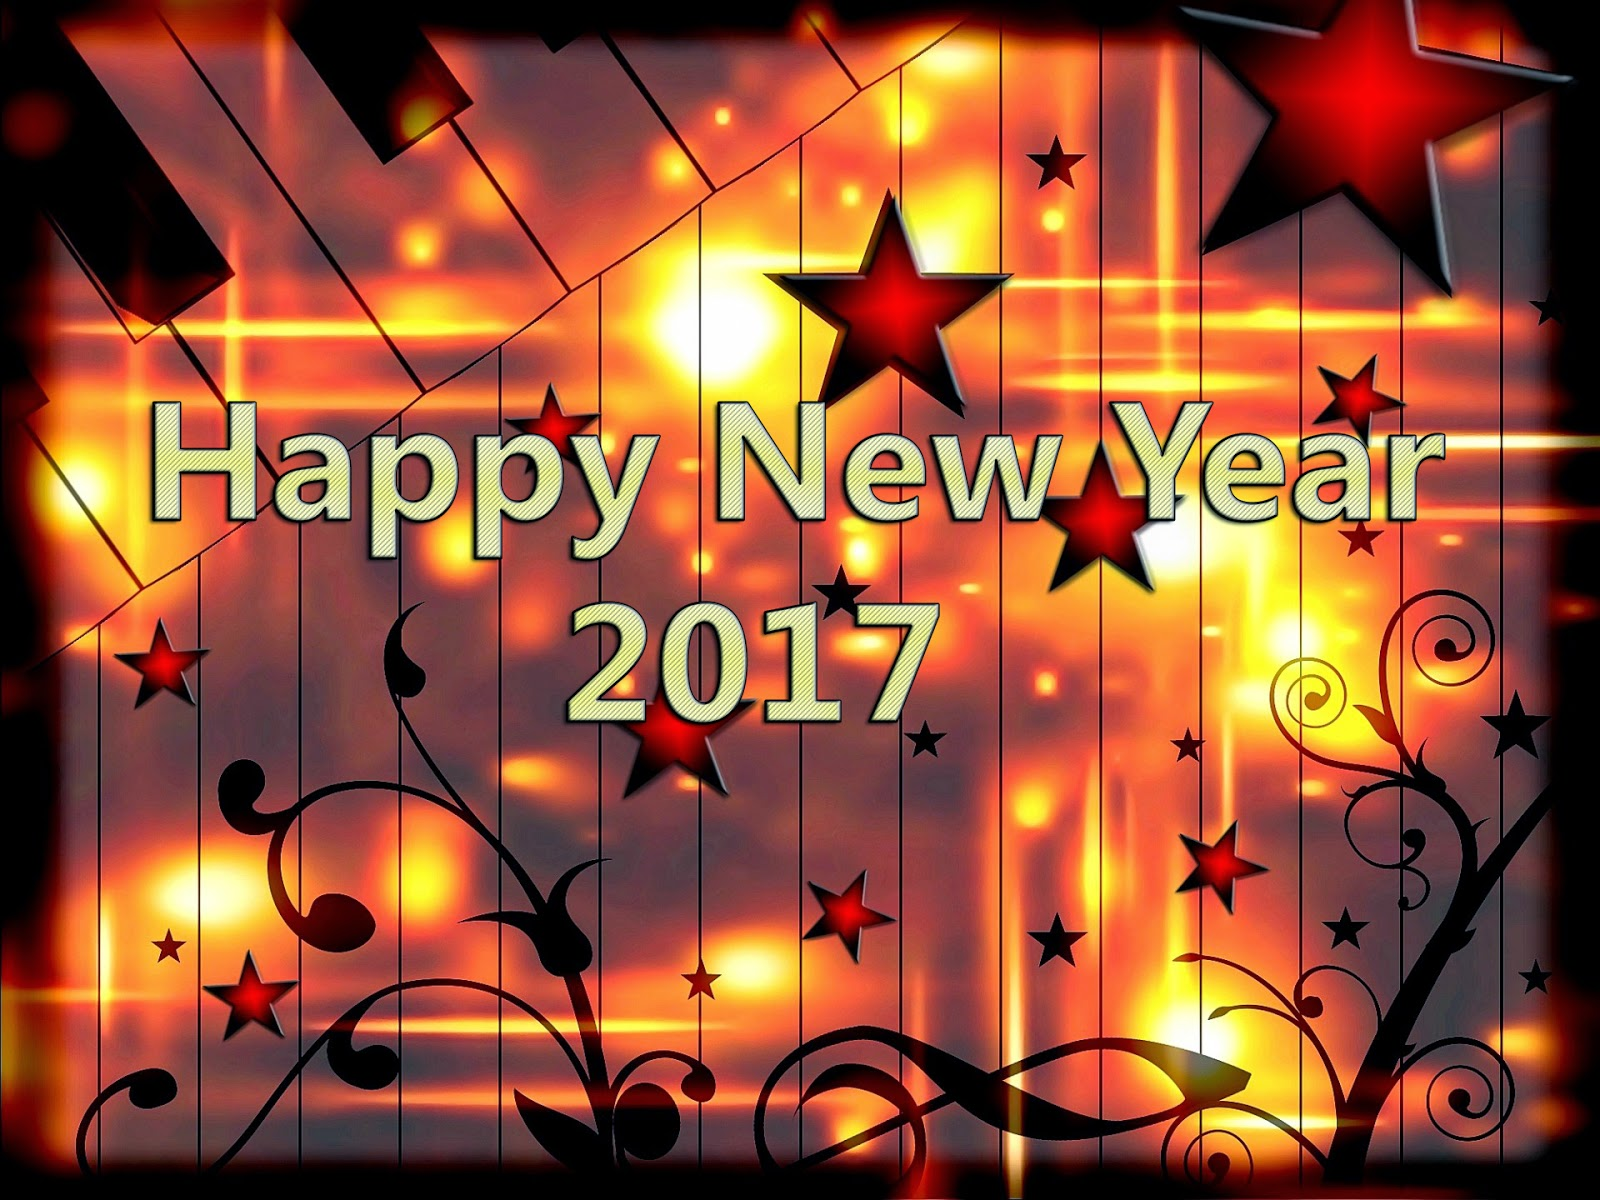 2017 Happy New Year In German Greetings Sms Quotes